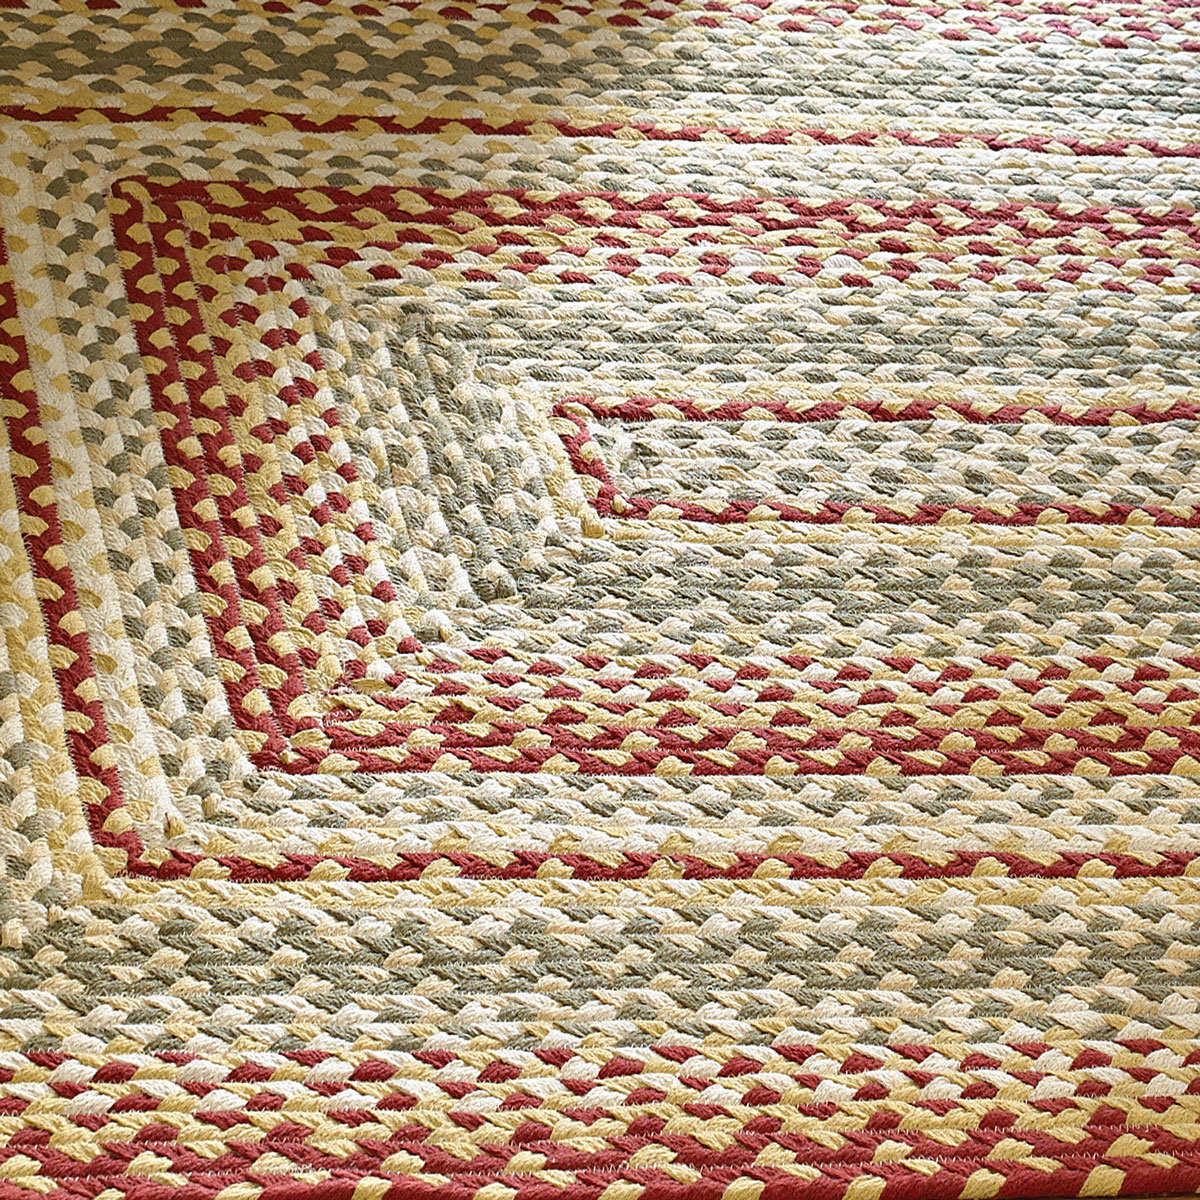 Park Designs Cotton Braided Area Rug Red Green Ebay